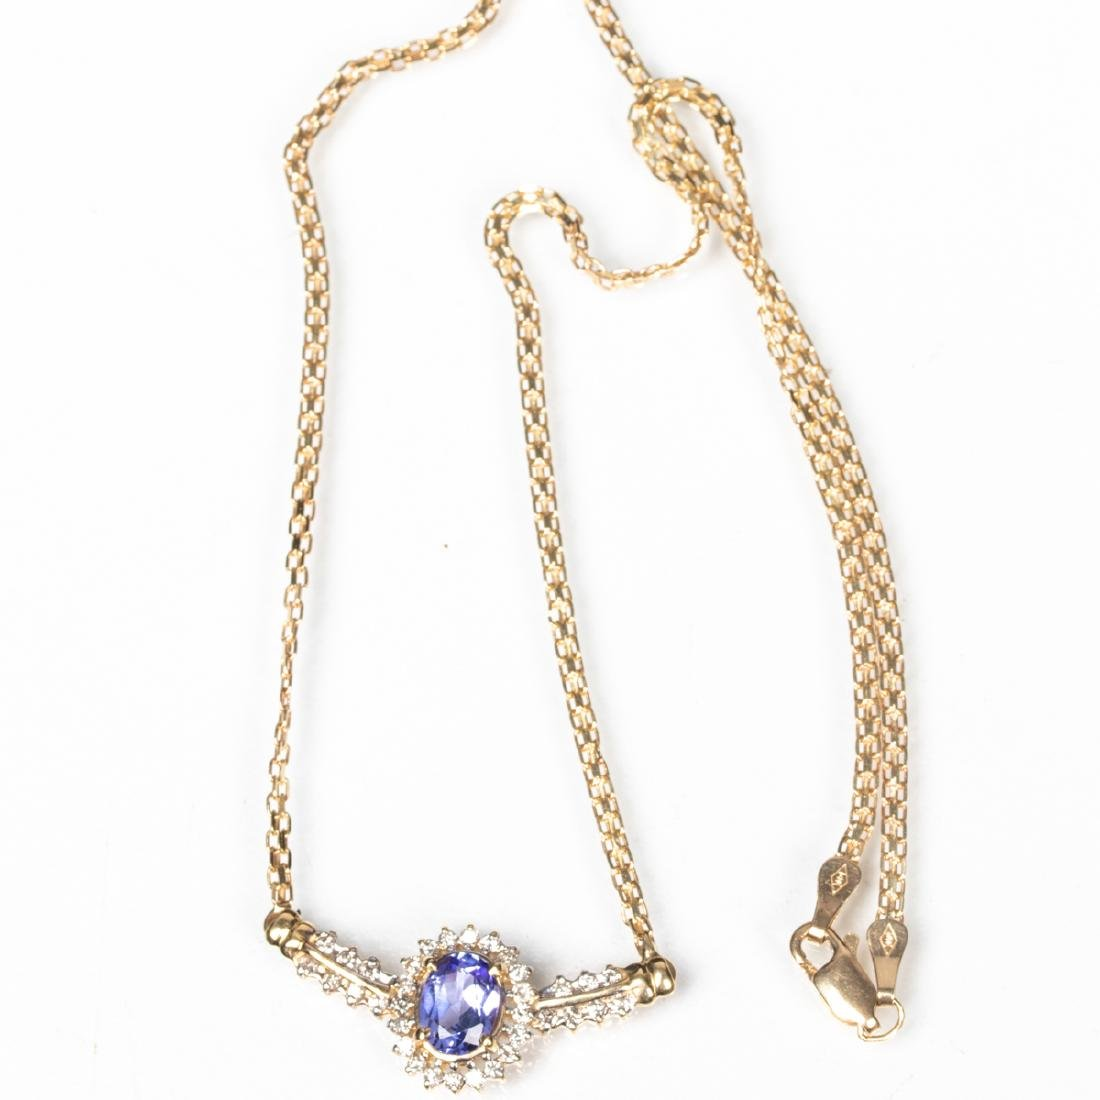 A 14kt Yellow Gold, Tanzanite and Diamond Necklace,